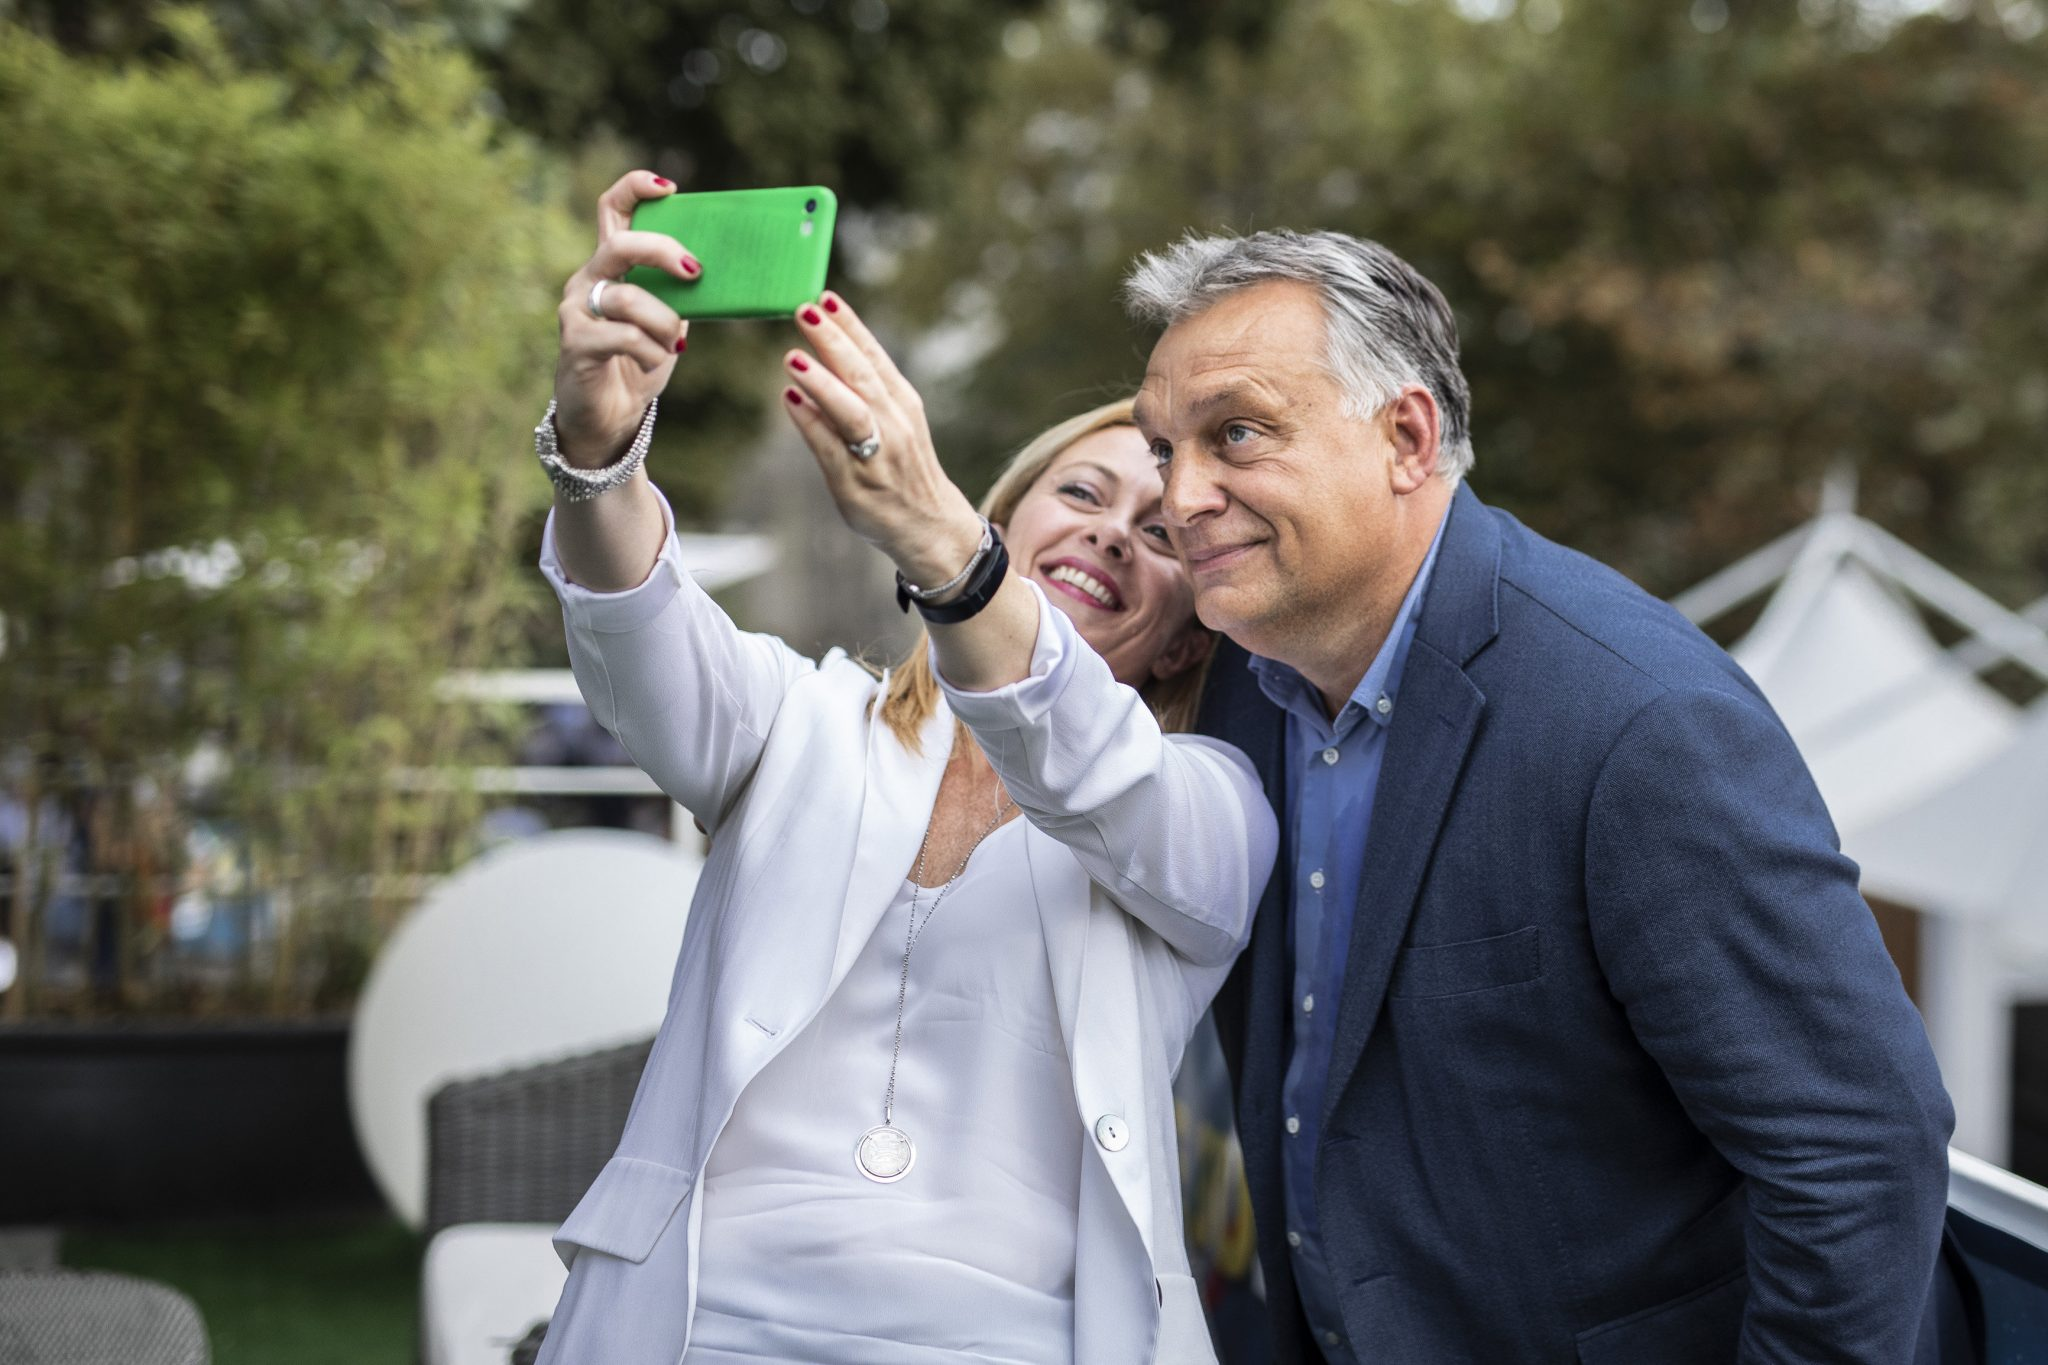 Leader of Brothers of Italy: Orbán Our Role Model